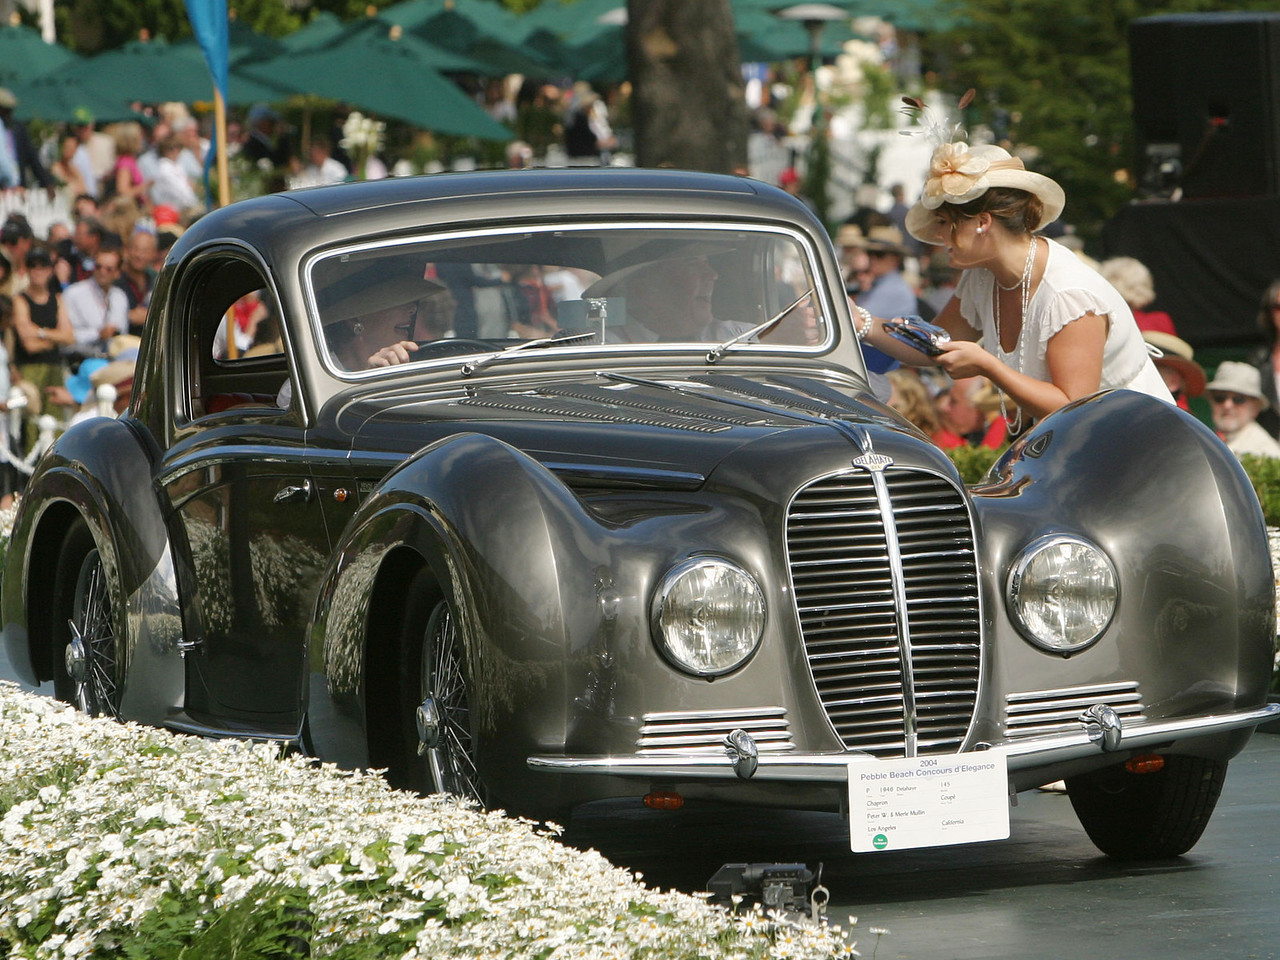 1946 Delahaye 145 Chapron Coupé.